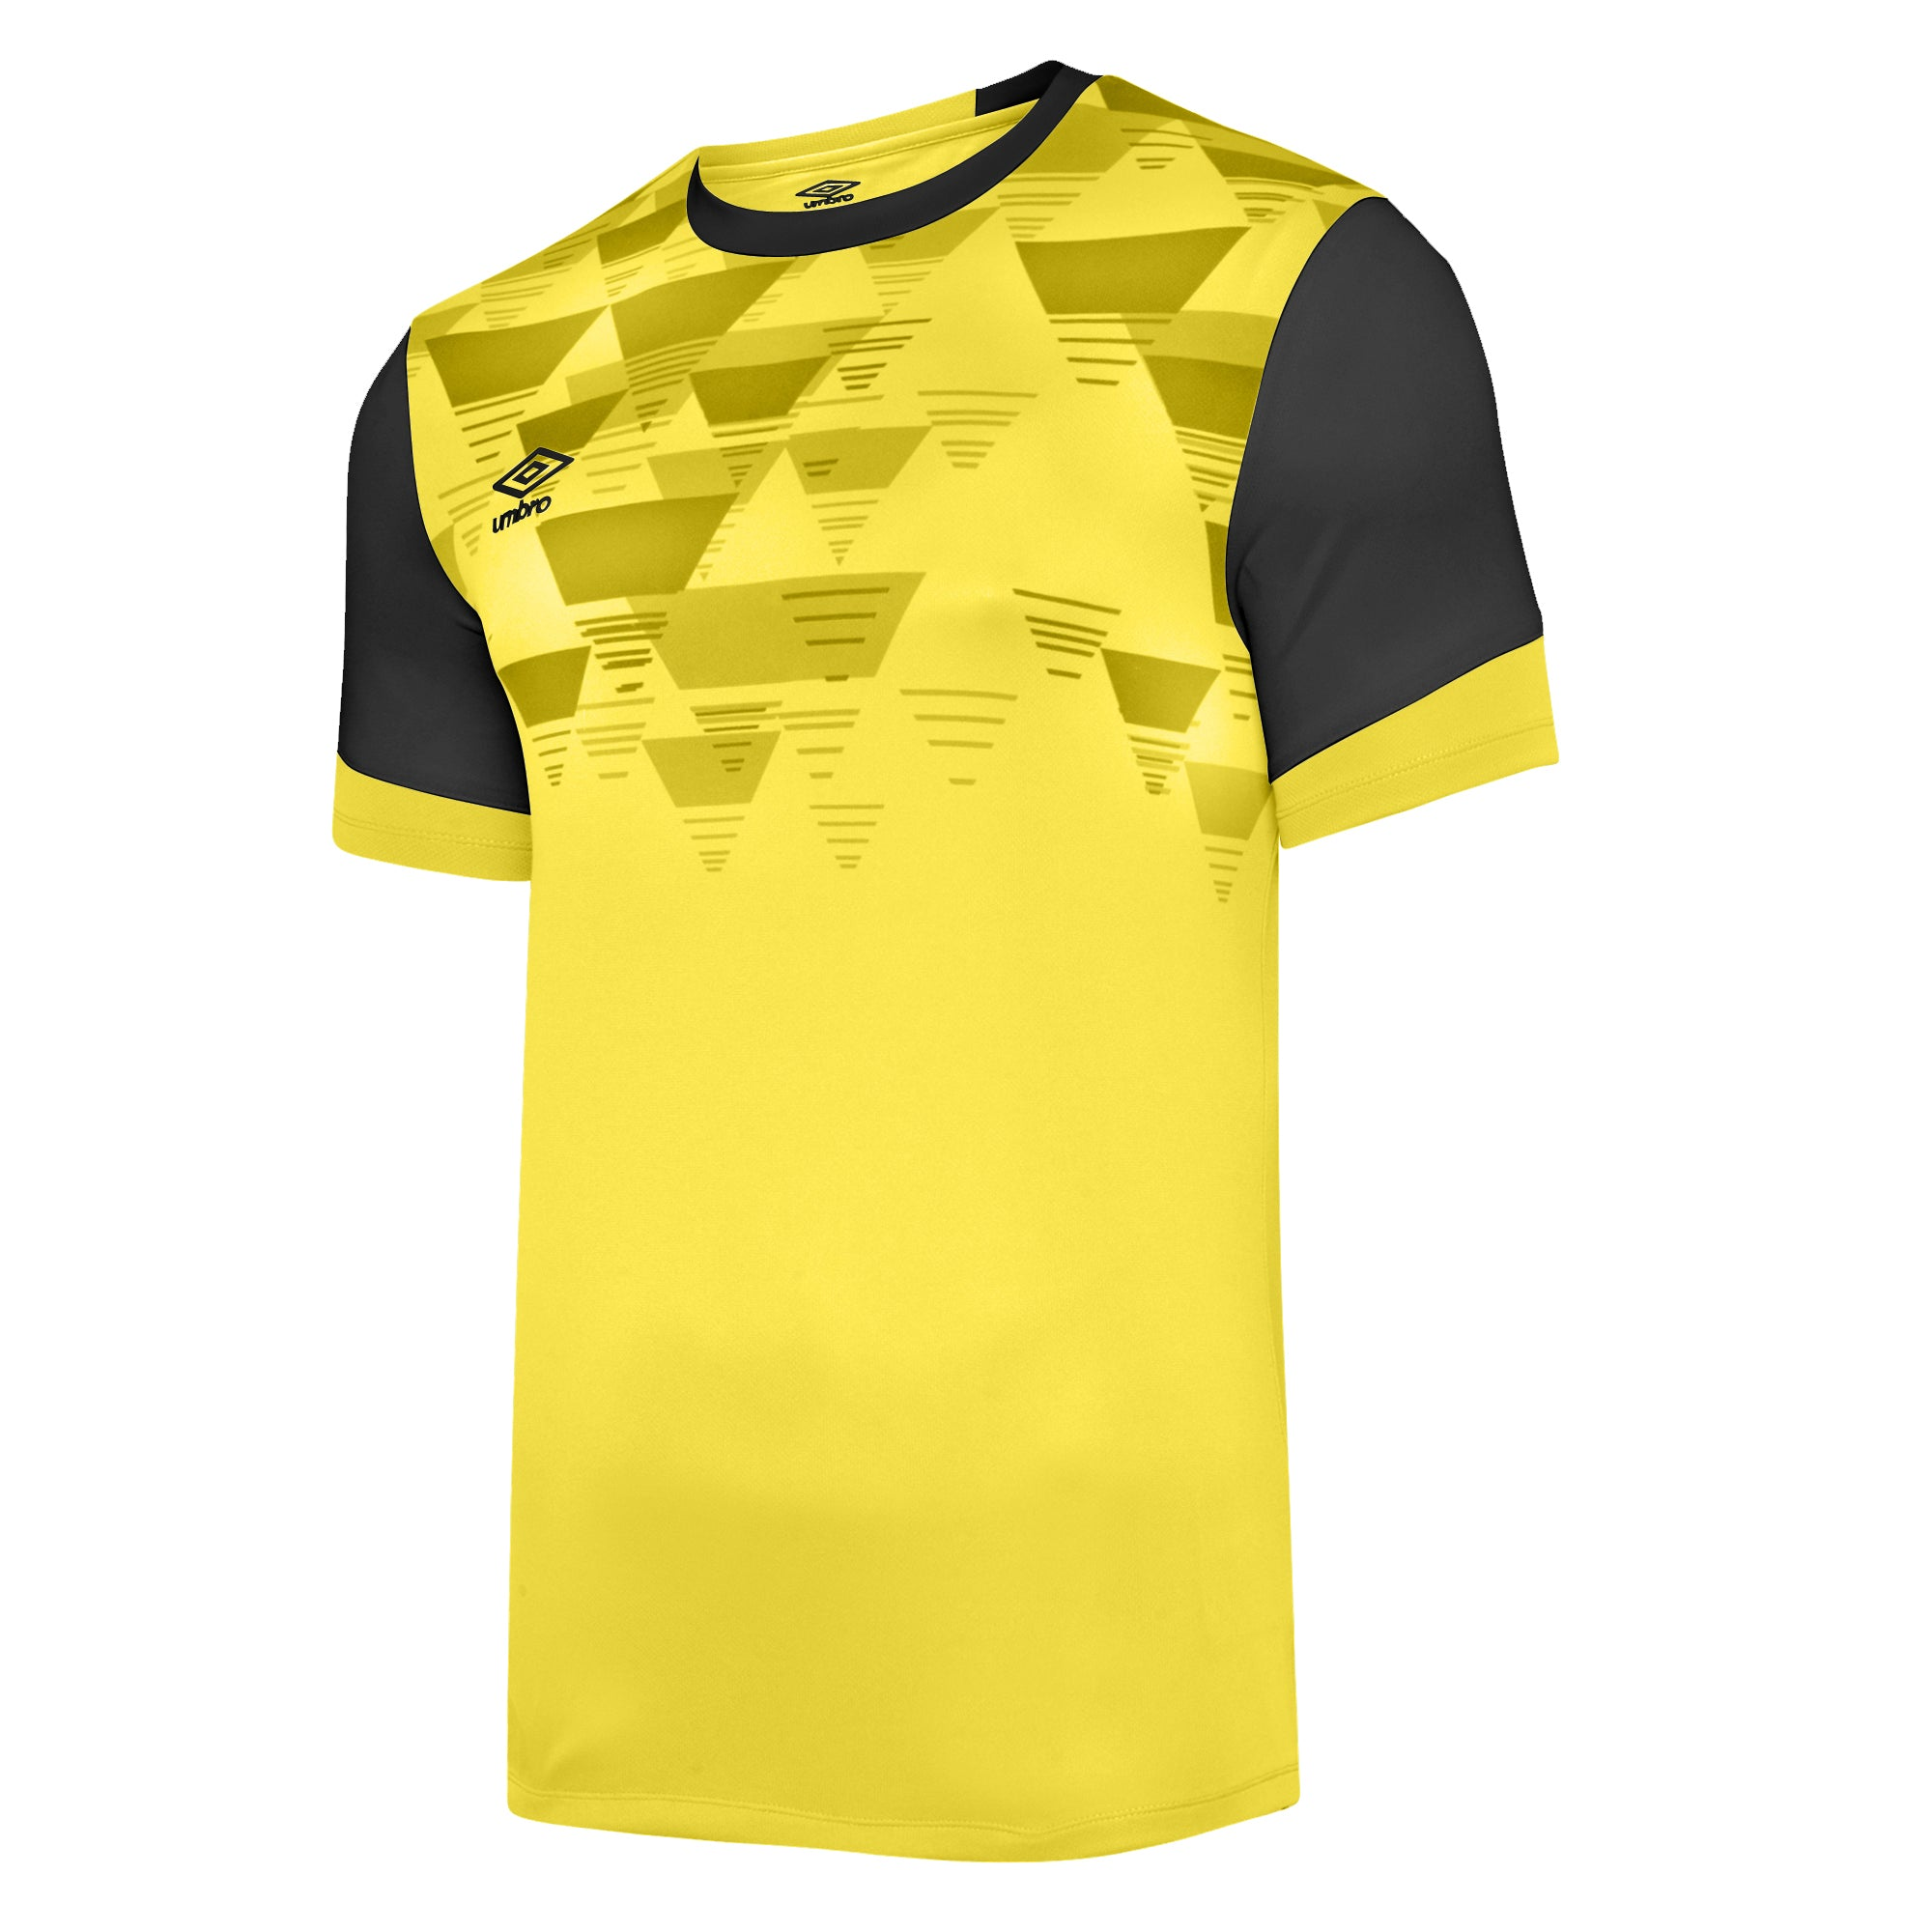 Umbro Vier Jersey SS - Blazing Yellow/Carbon